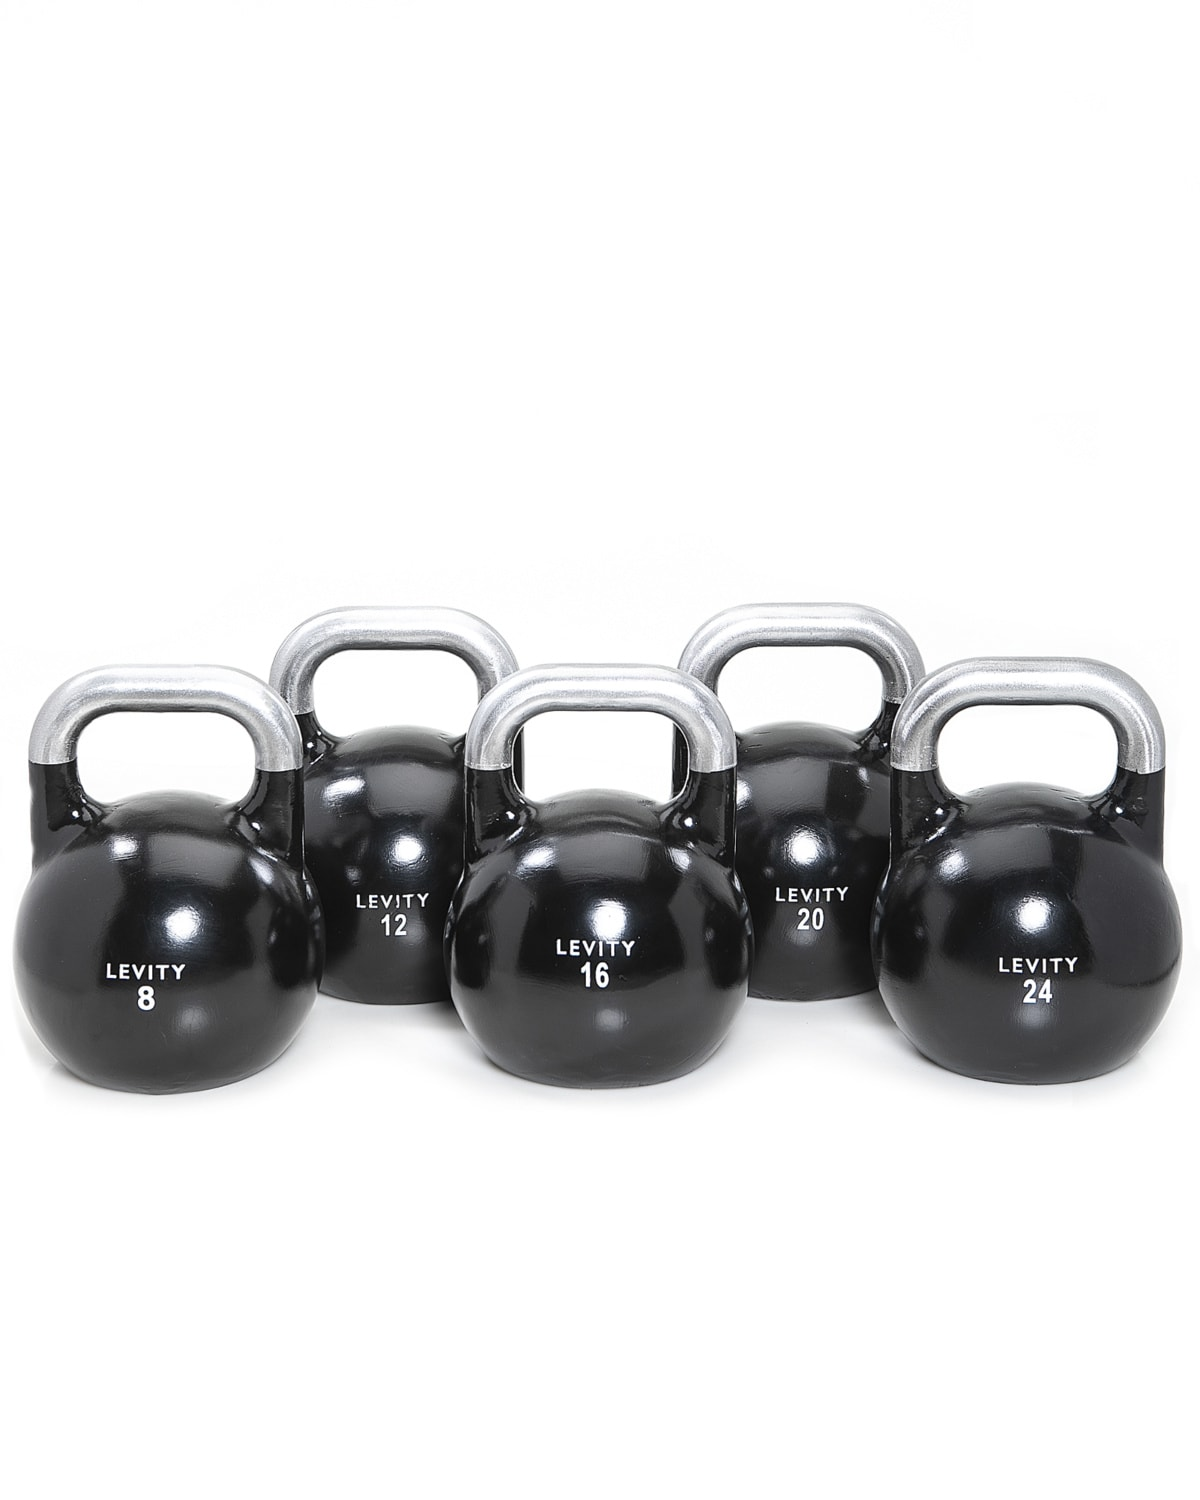 LEVITY Premium Fitness Competition Kettlebells 3